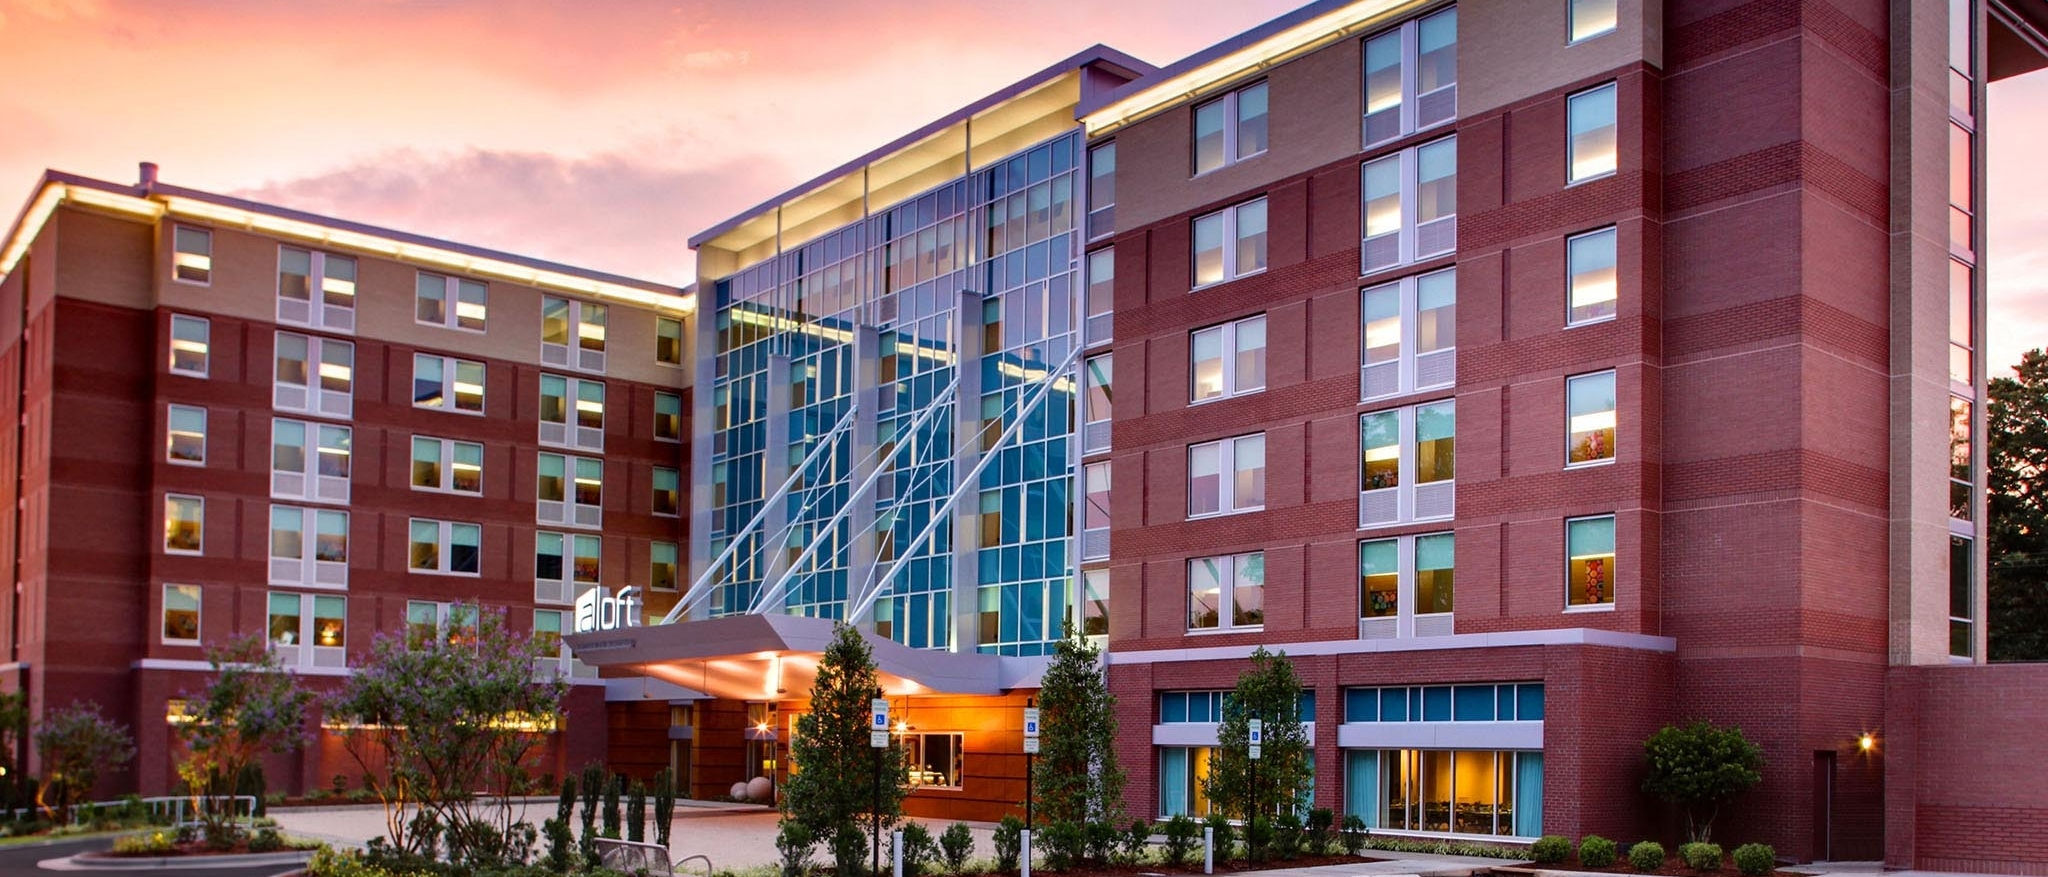 Aloft Chapel Hill - Exterior